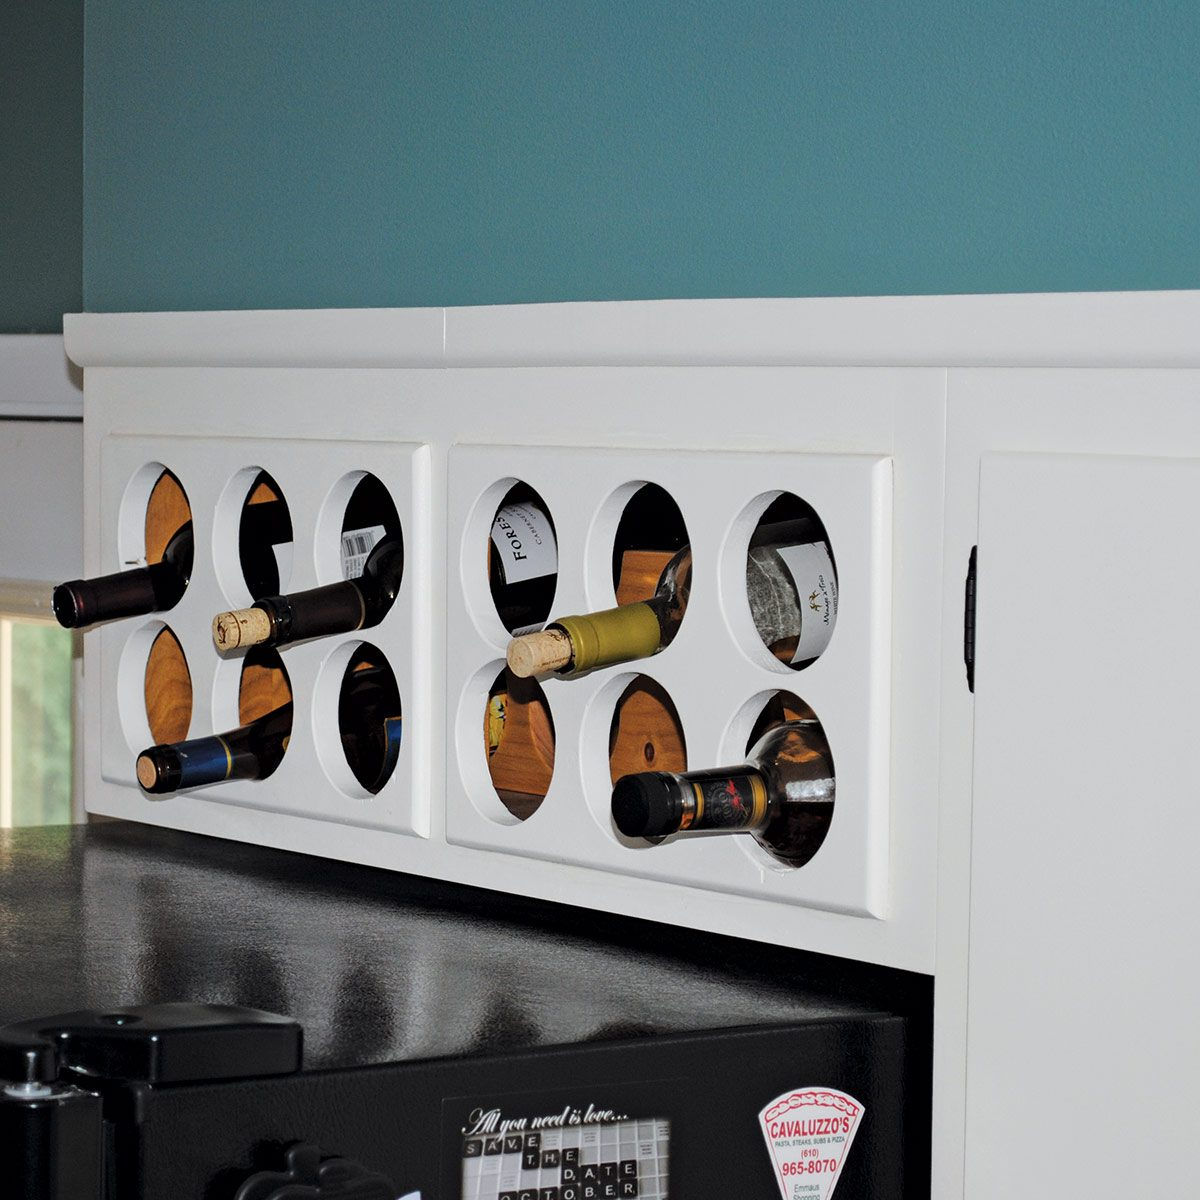 Above cabinet wine rack